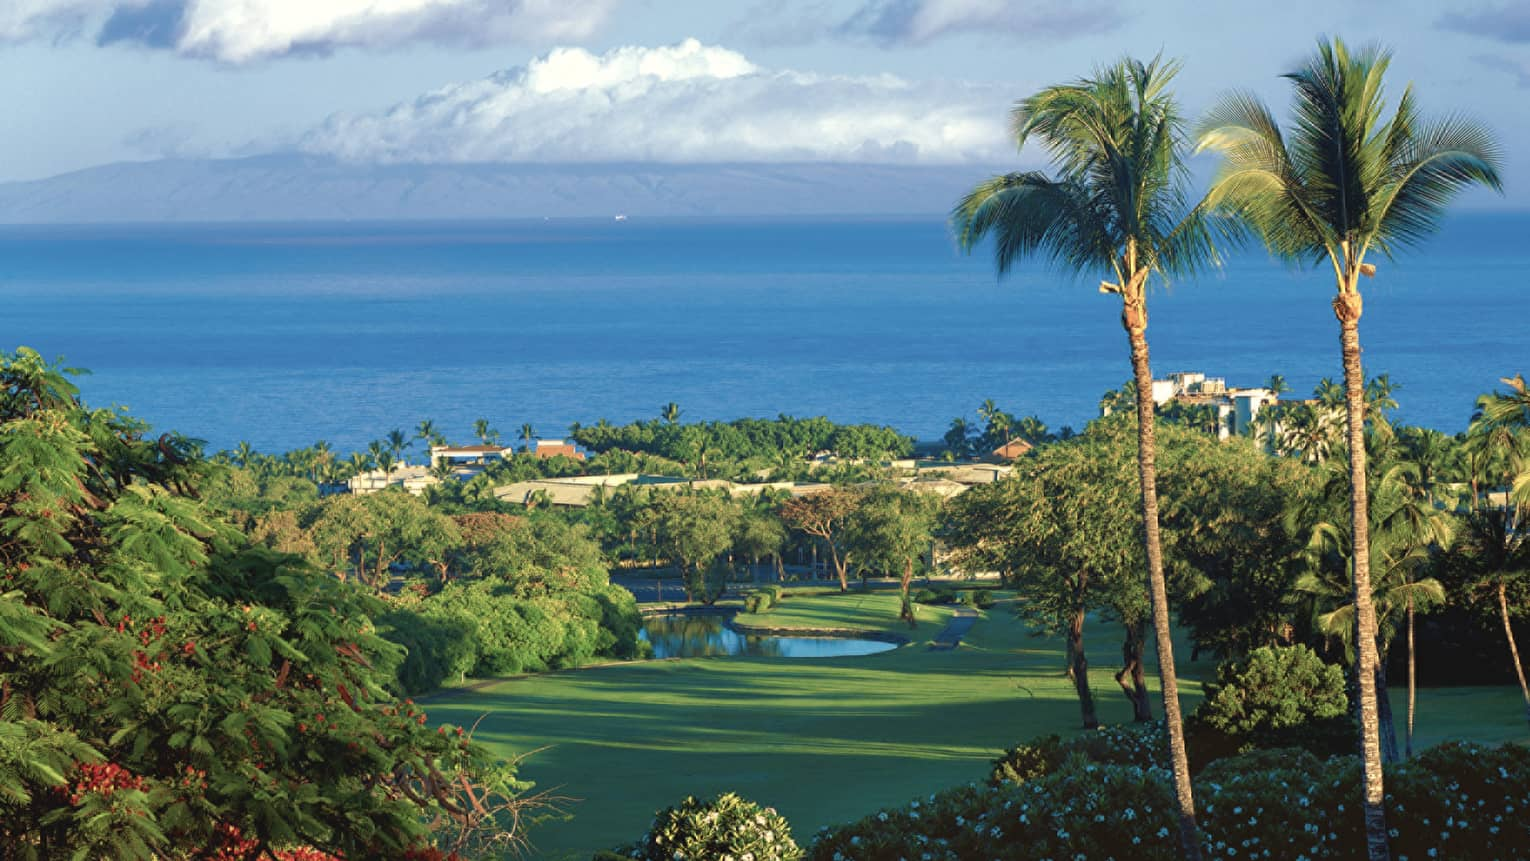 Looking down at Wailea Blue Course green with resort, ocean and mountain in background